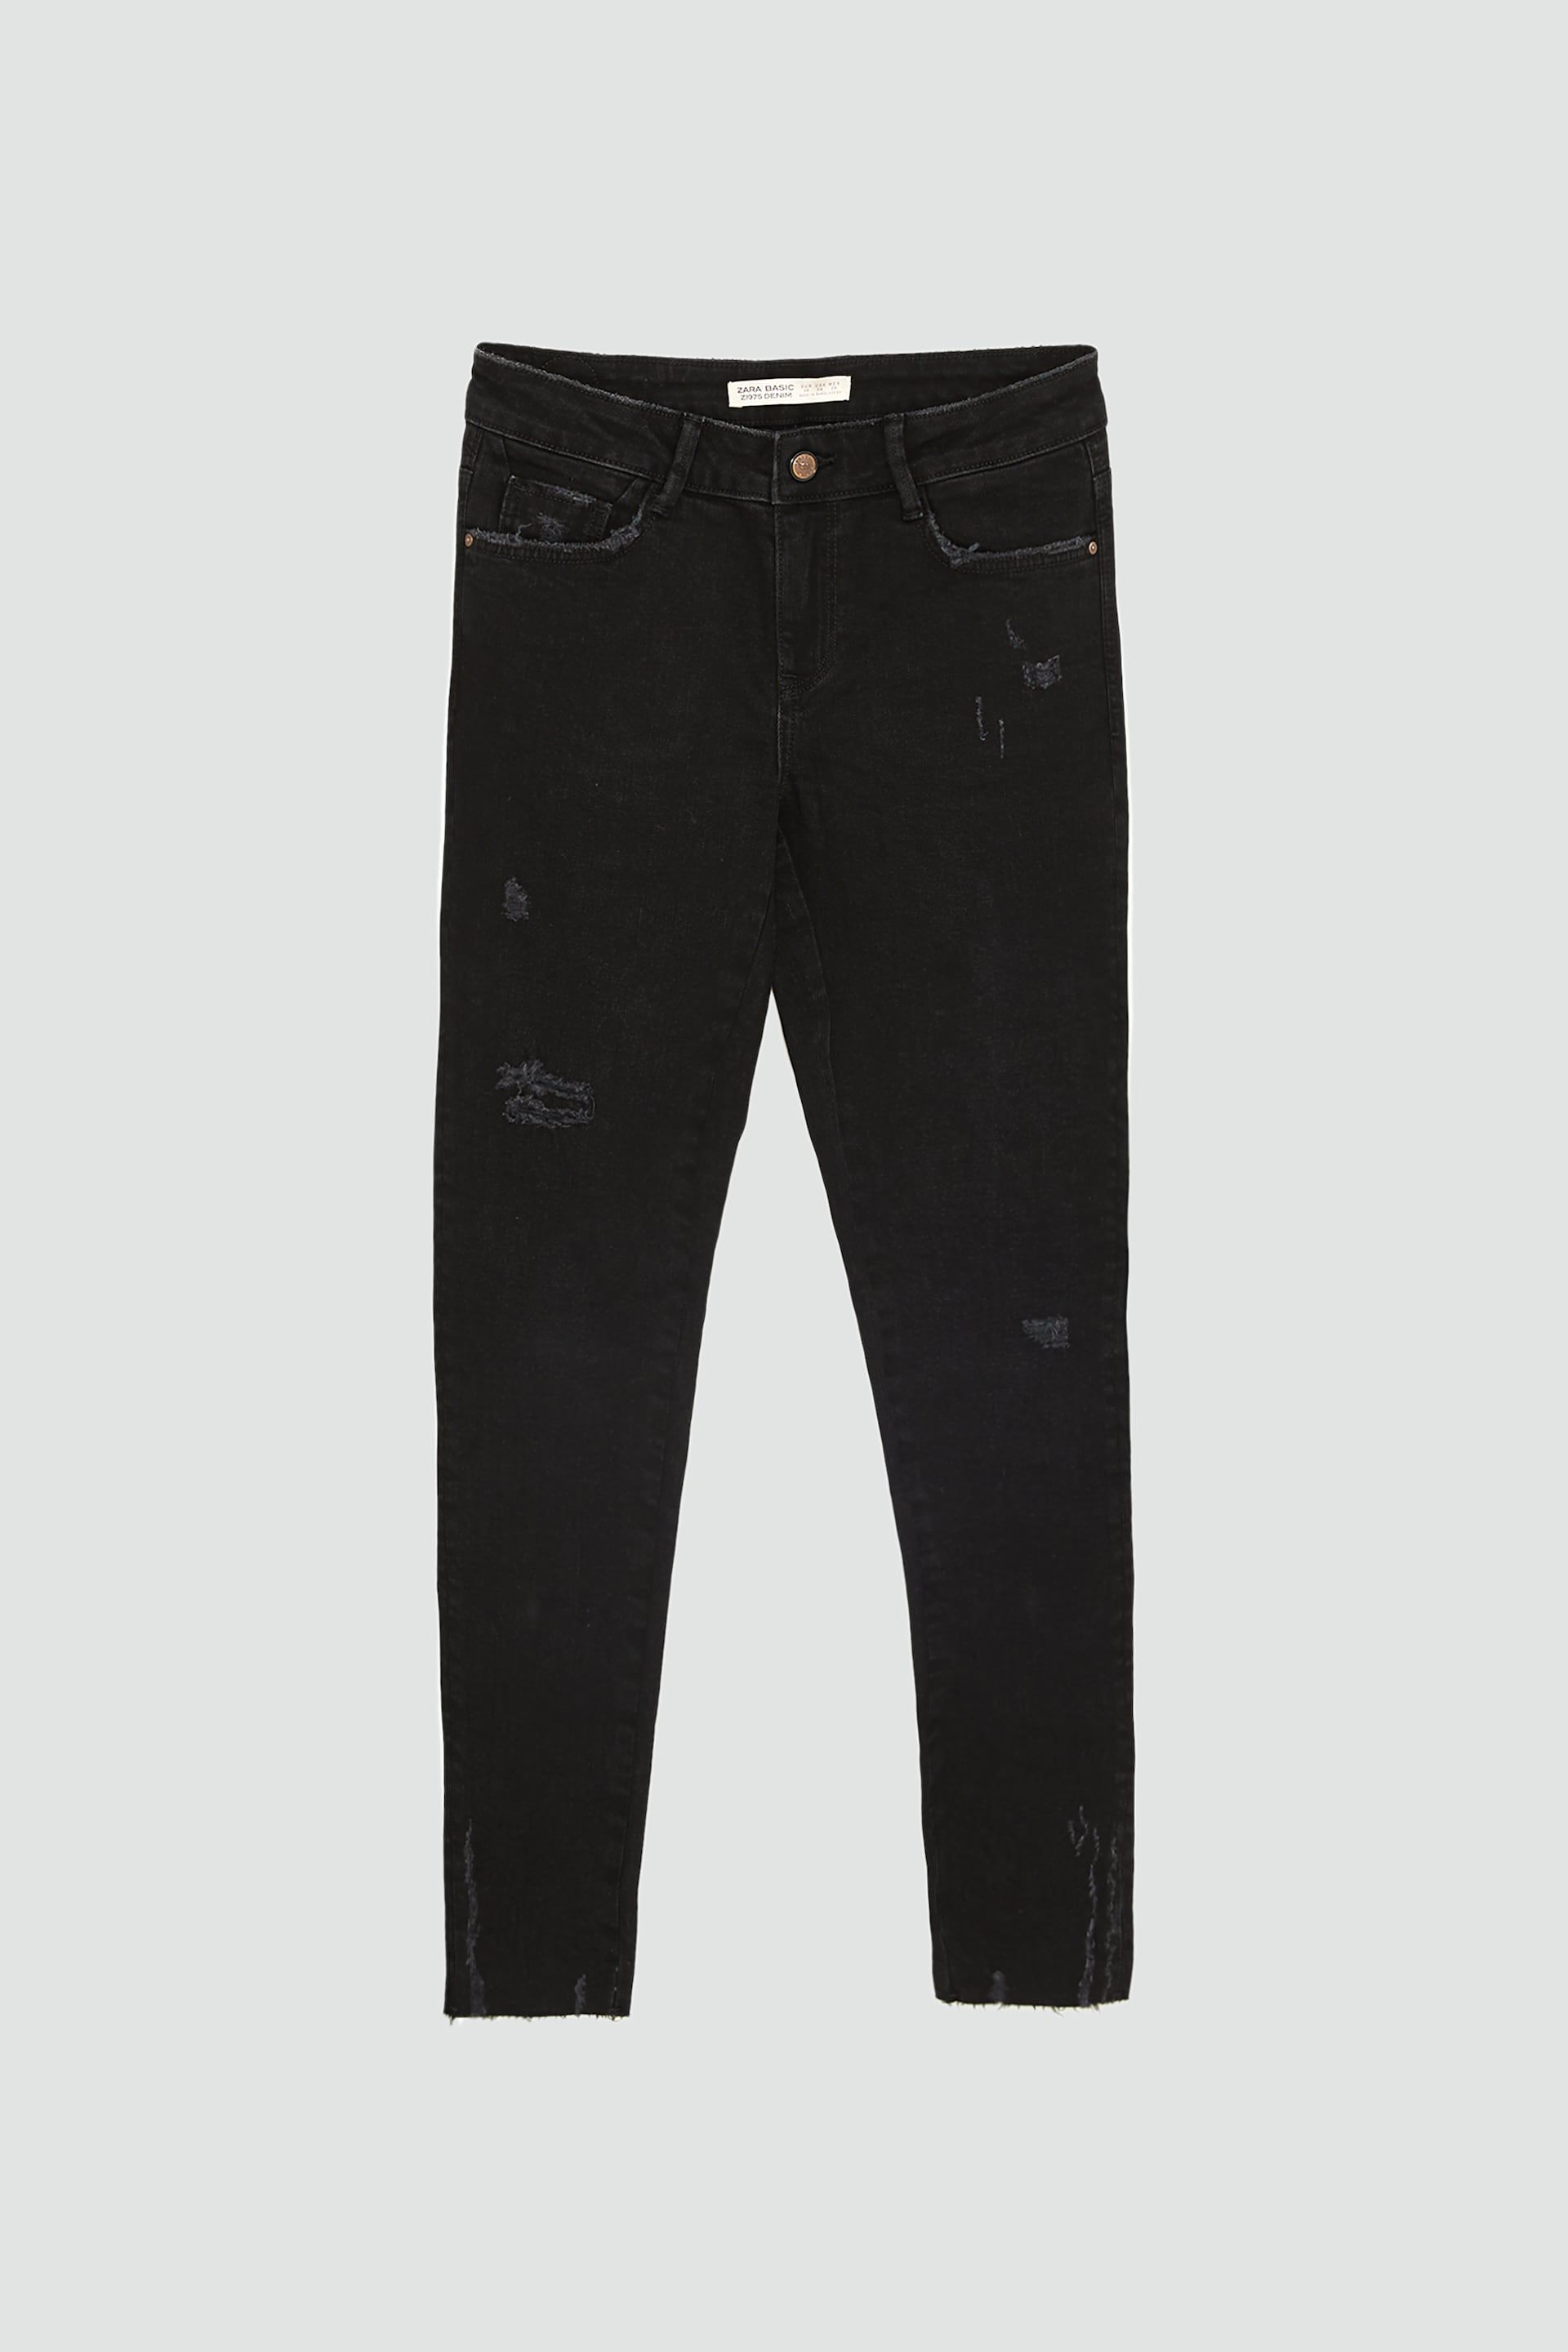 8053be73 Z1975 ripped skinny jeans | wants | Ripped skinny jeans, Jeans ...